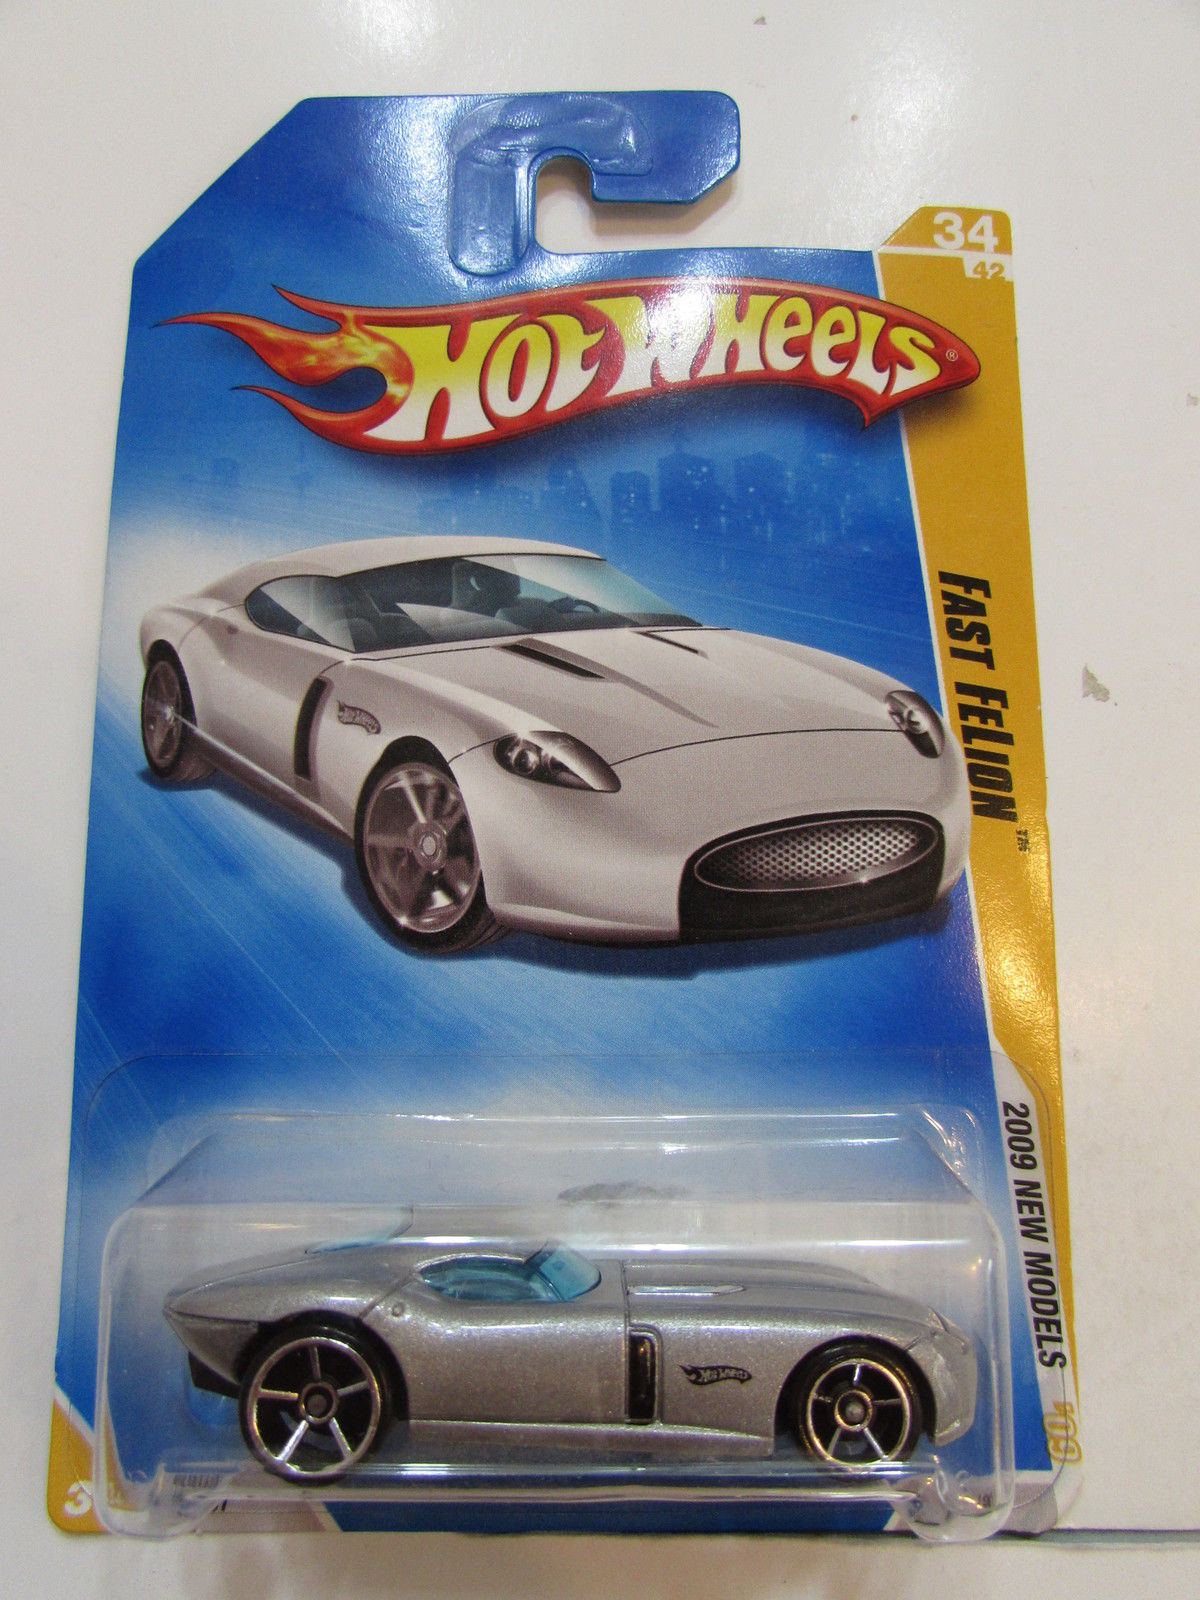 HOT WHEELS 2009 NEW MODELS FAST FELION SILVER #34/42